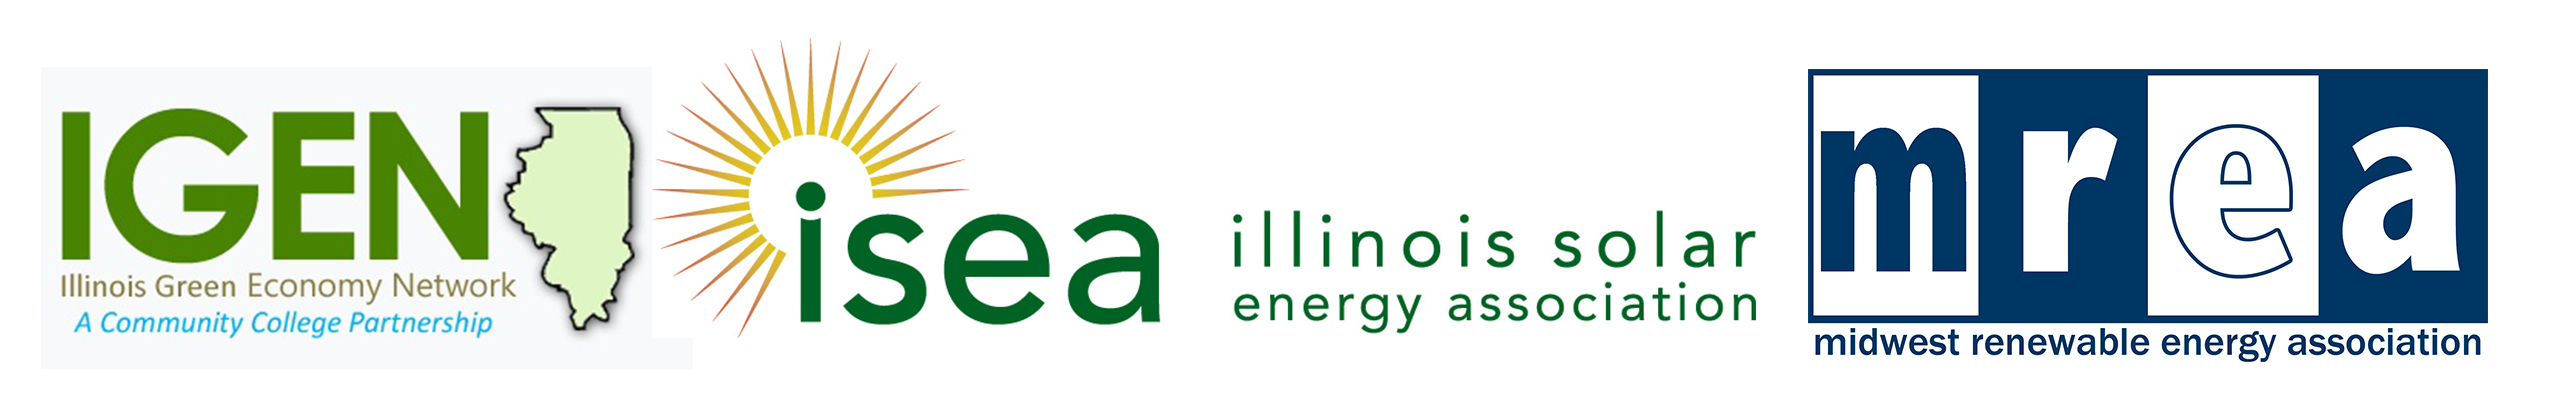 Final SPIL Partner logos Solar Powering Illinois Conference